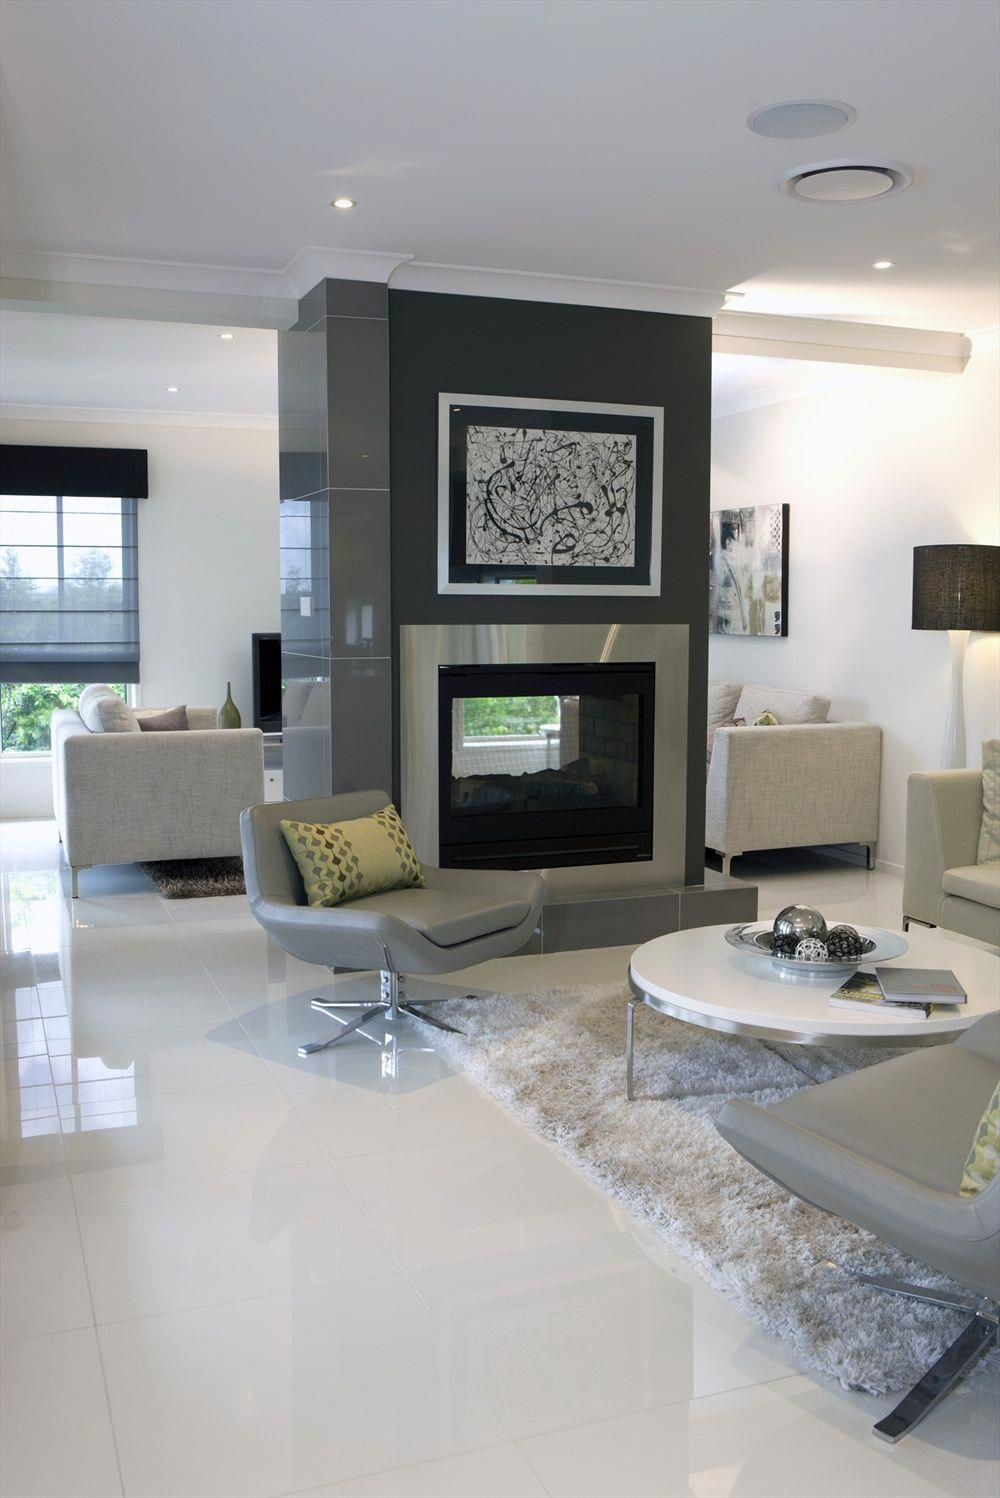 What Do You Think Of This Living Rooms Tile Idea I Got From